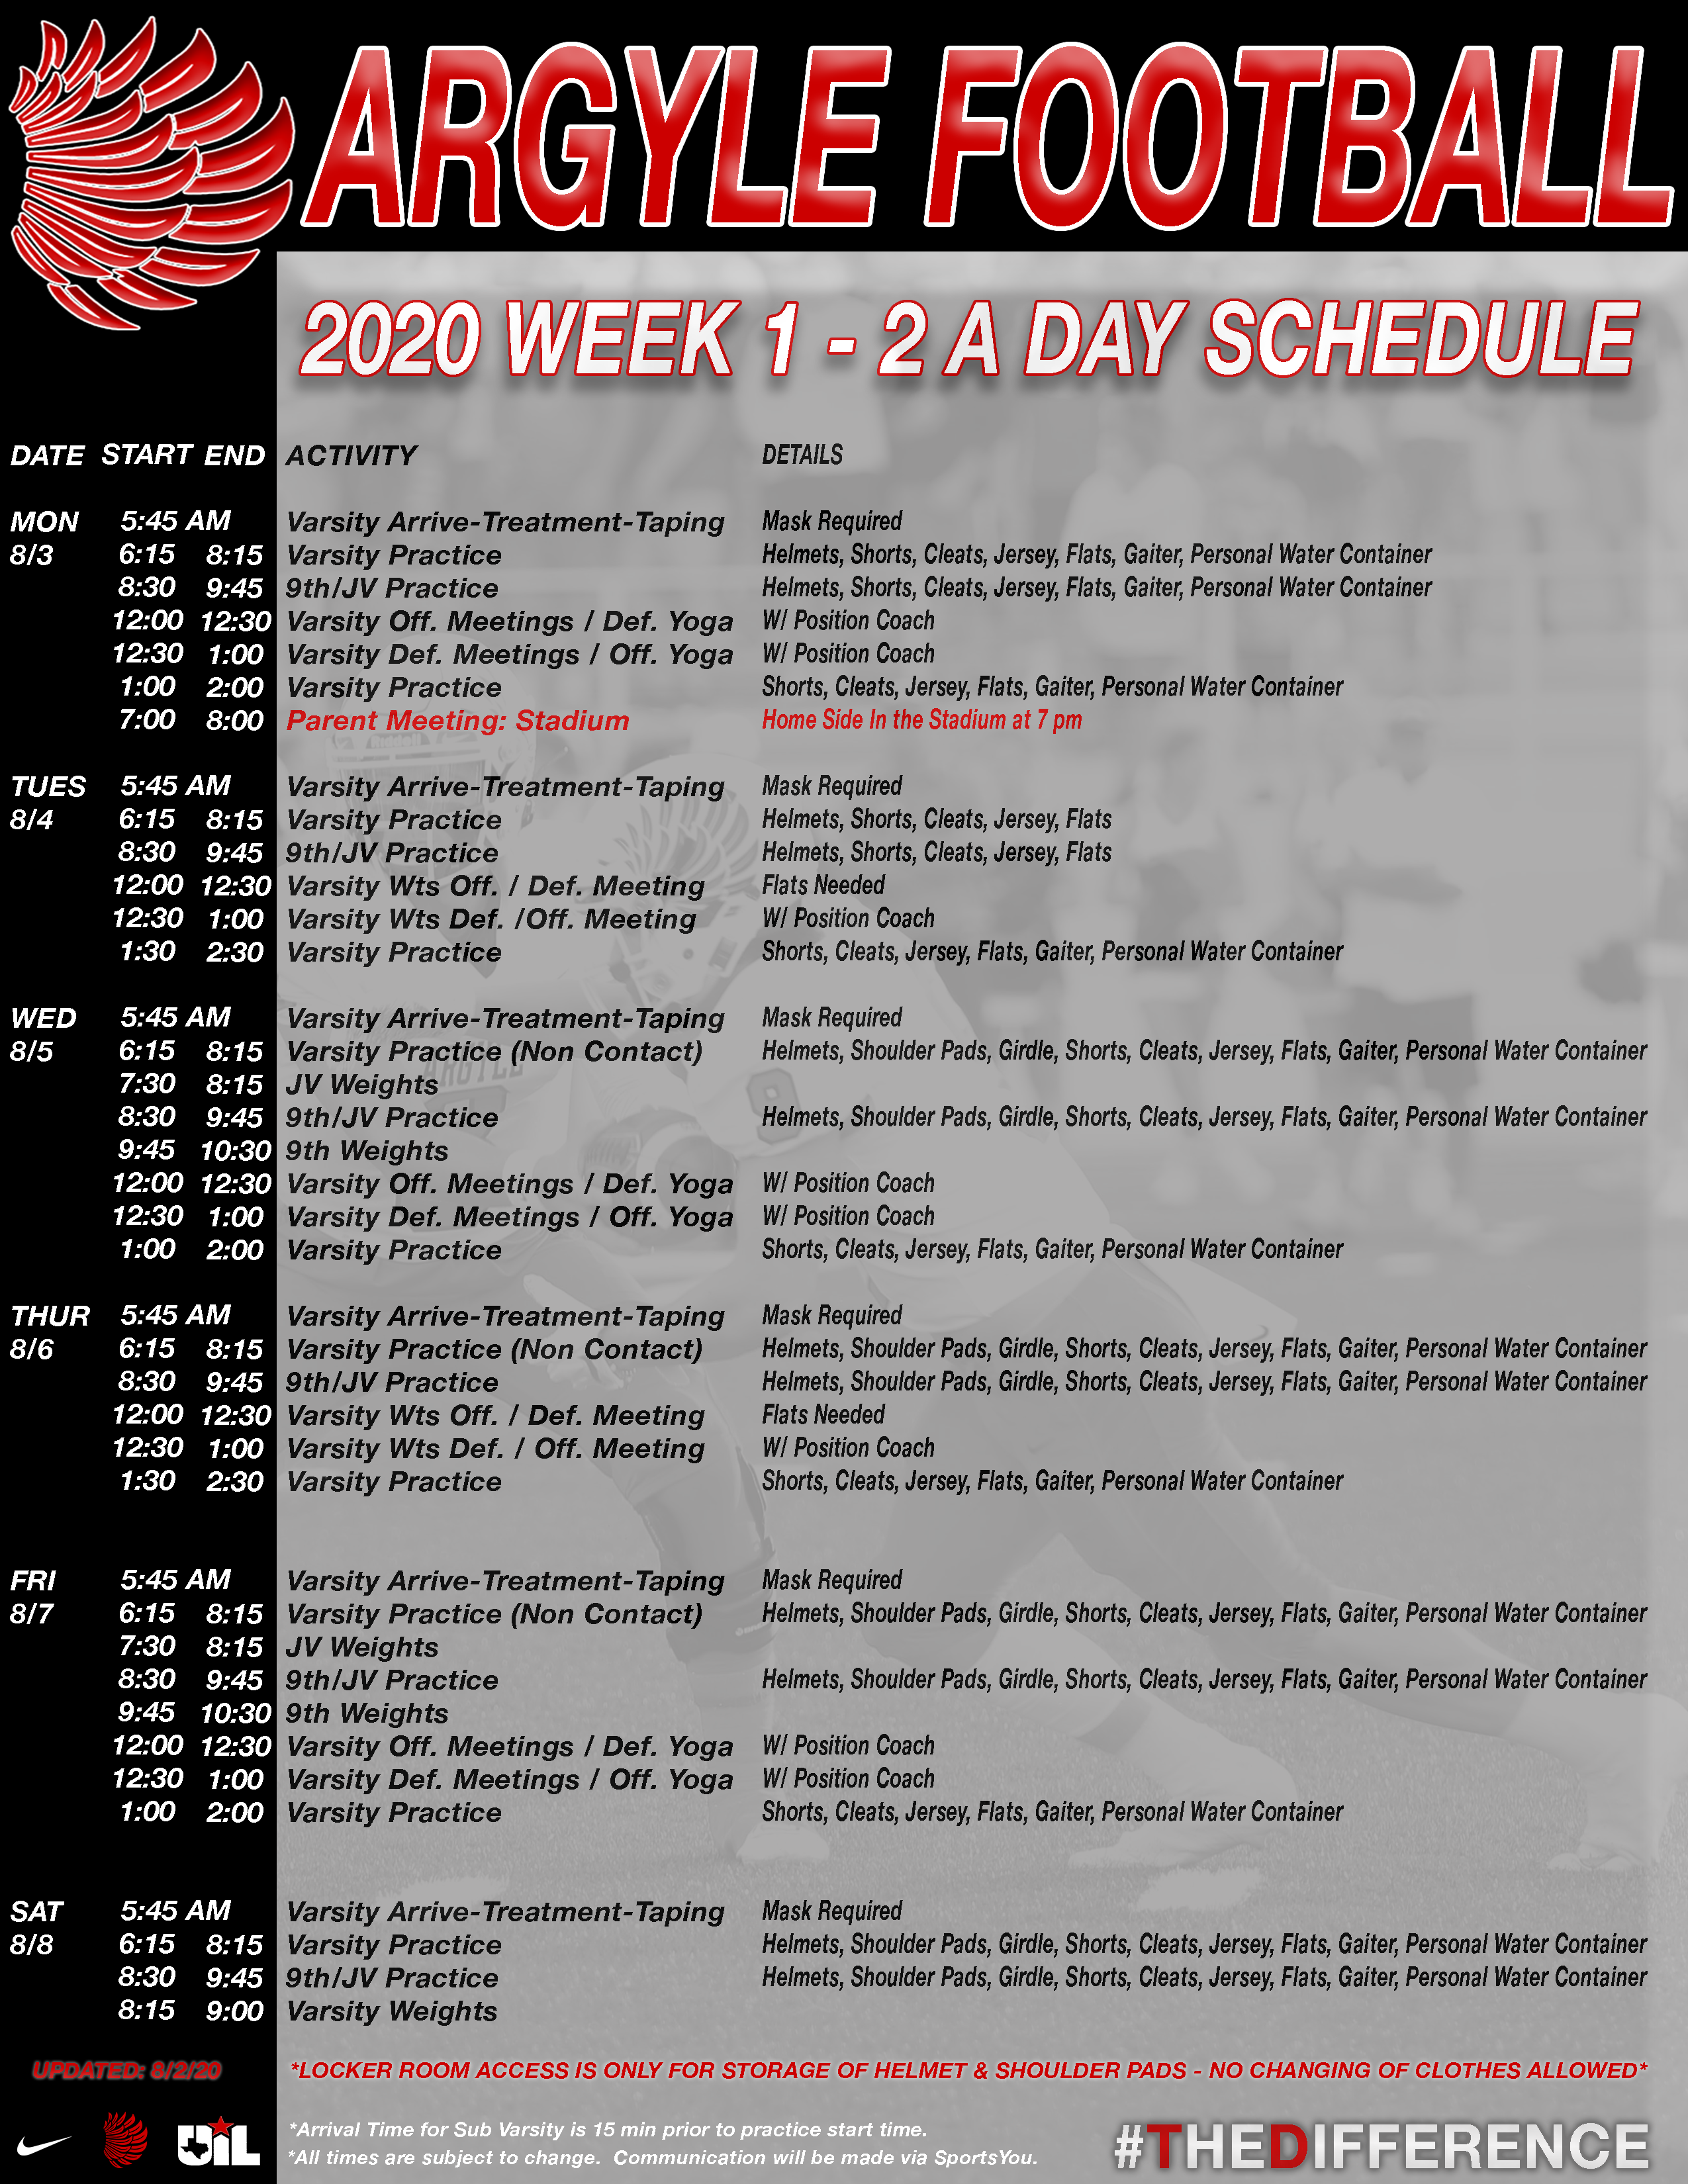 2 A Day Schedule - Week 1 Updated 8.2.2020